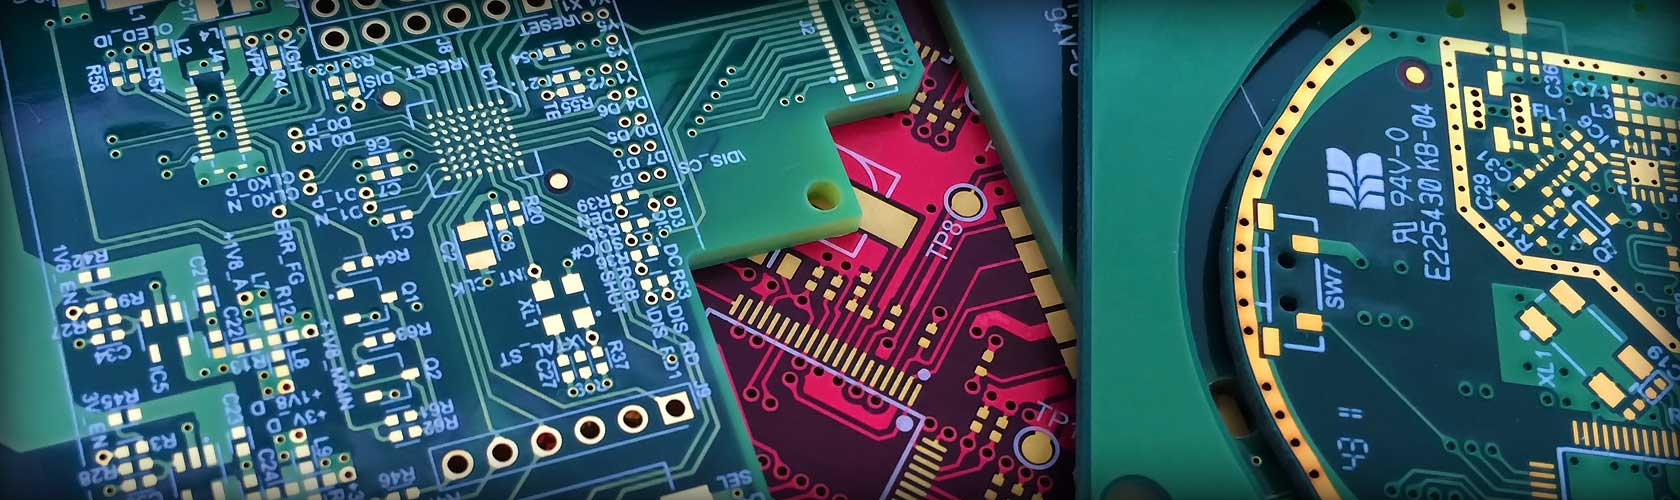 Logicad Printed Circuit Board Design Perth Western Australia Electronic